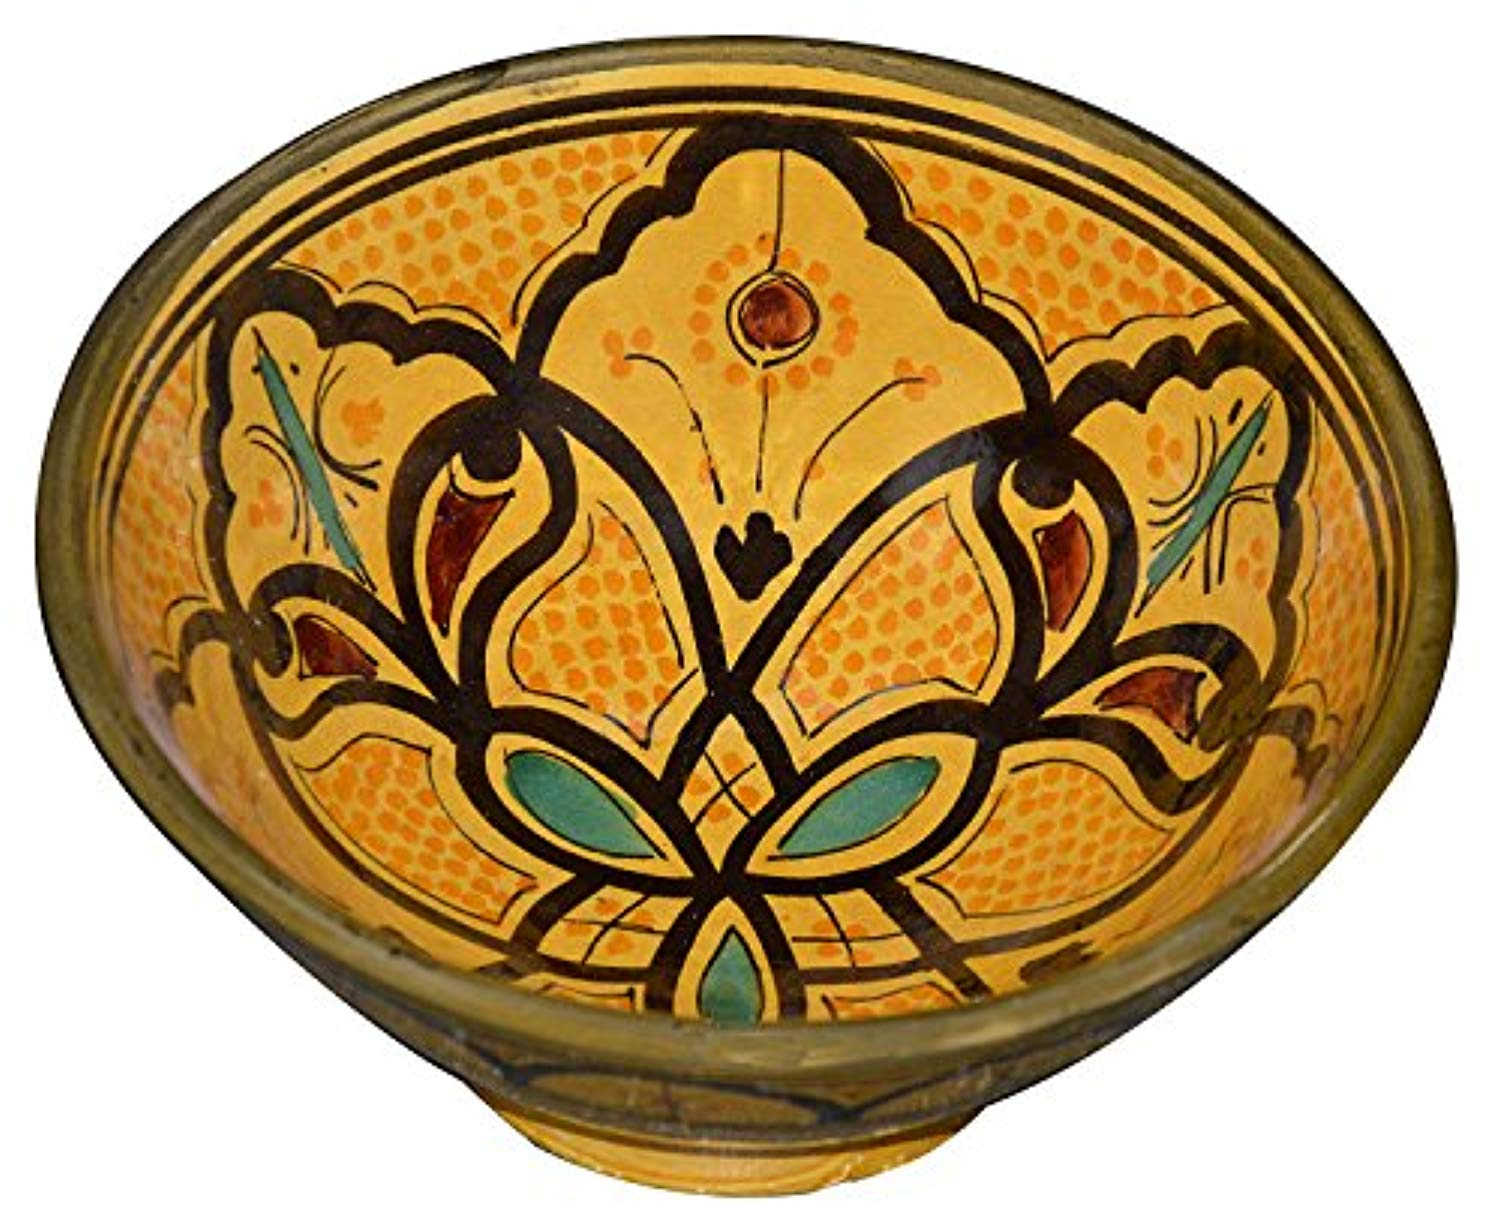 Ceramic Bowls Moroccan Handmade Serving Exquisite Piece With Vivid Colors 8 inches Across - Ufumbuzi - Home